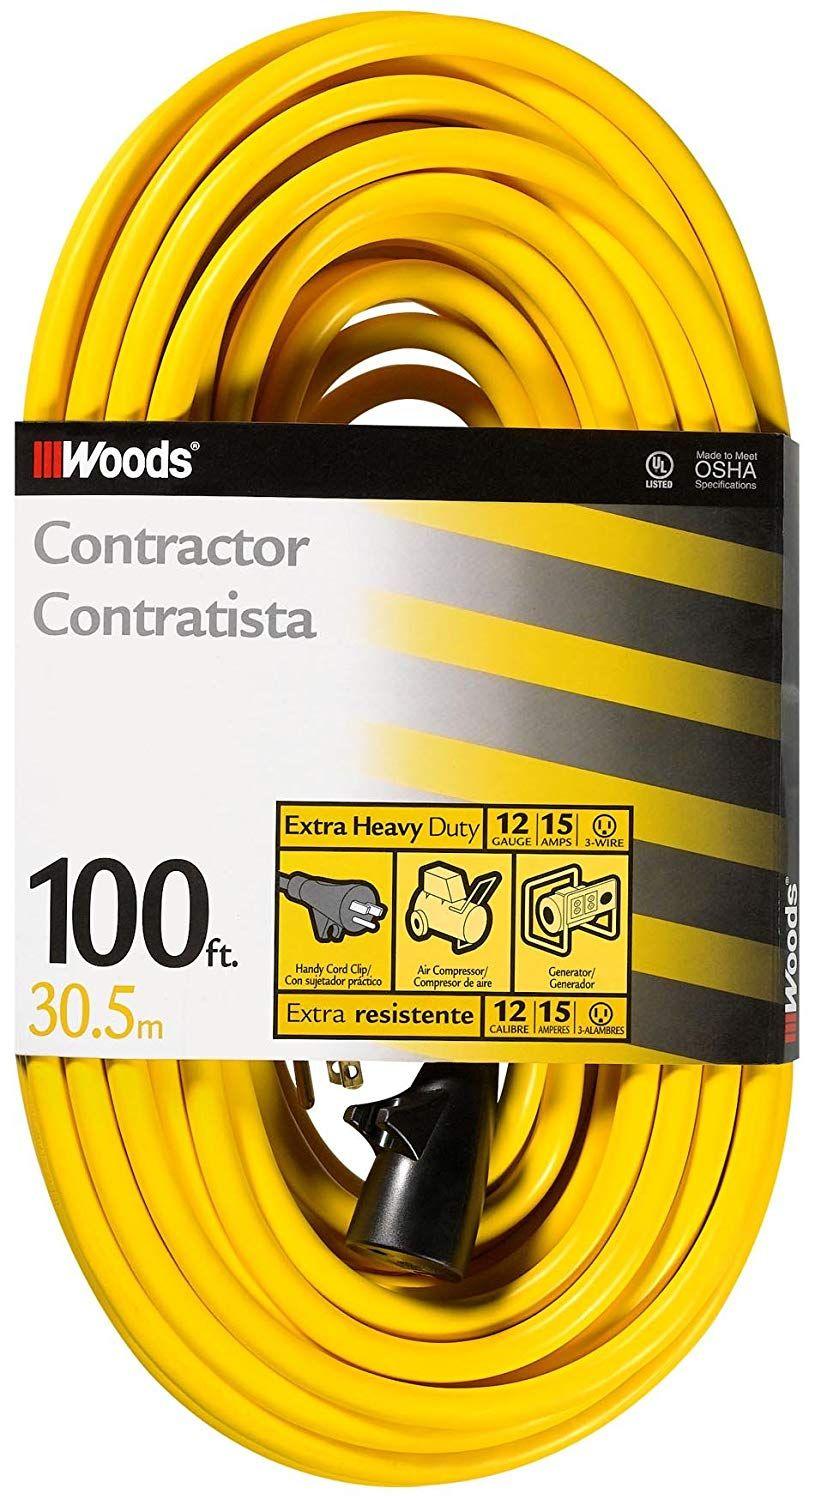 Woods 992555 12 3 Sjtw High Visibility Extension Cord With Cord Clip 100 Foot Yellow Read More Reviews Of The Extension Cord Outdoor Extension Cord Vinyl